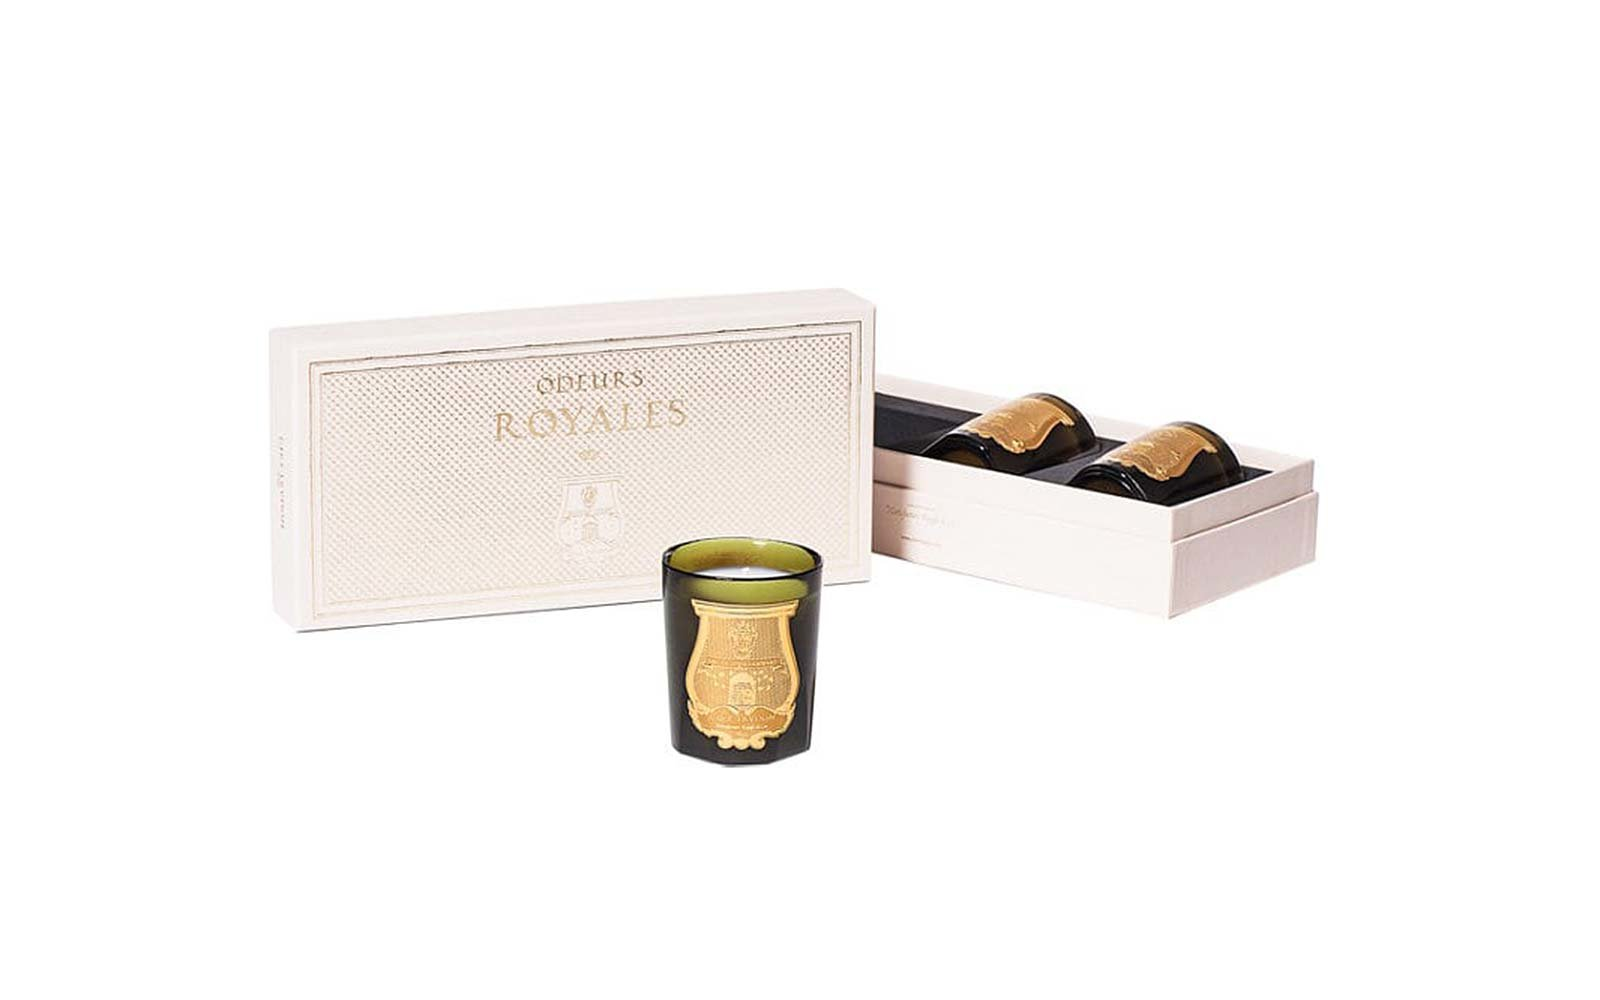 cire trudon travel set candle